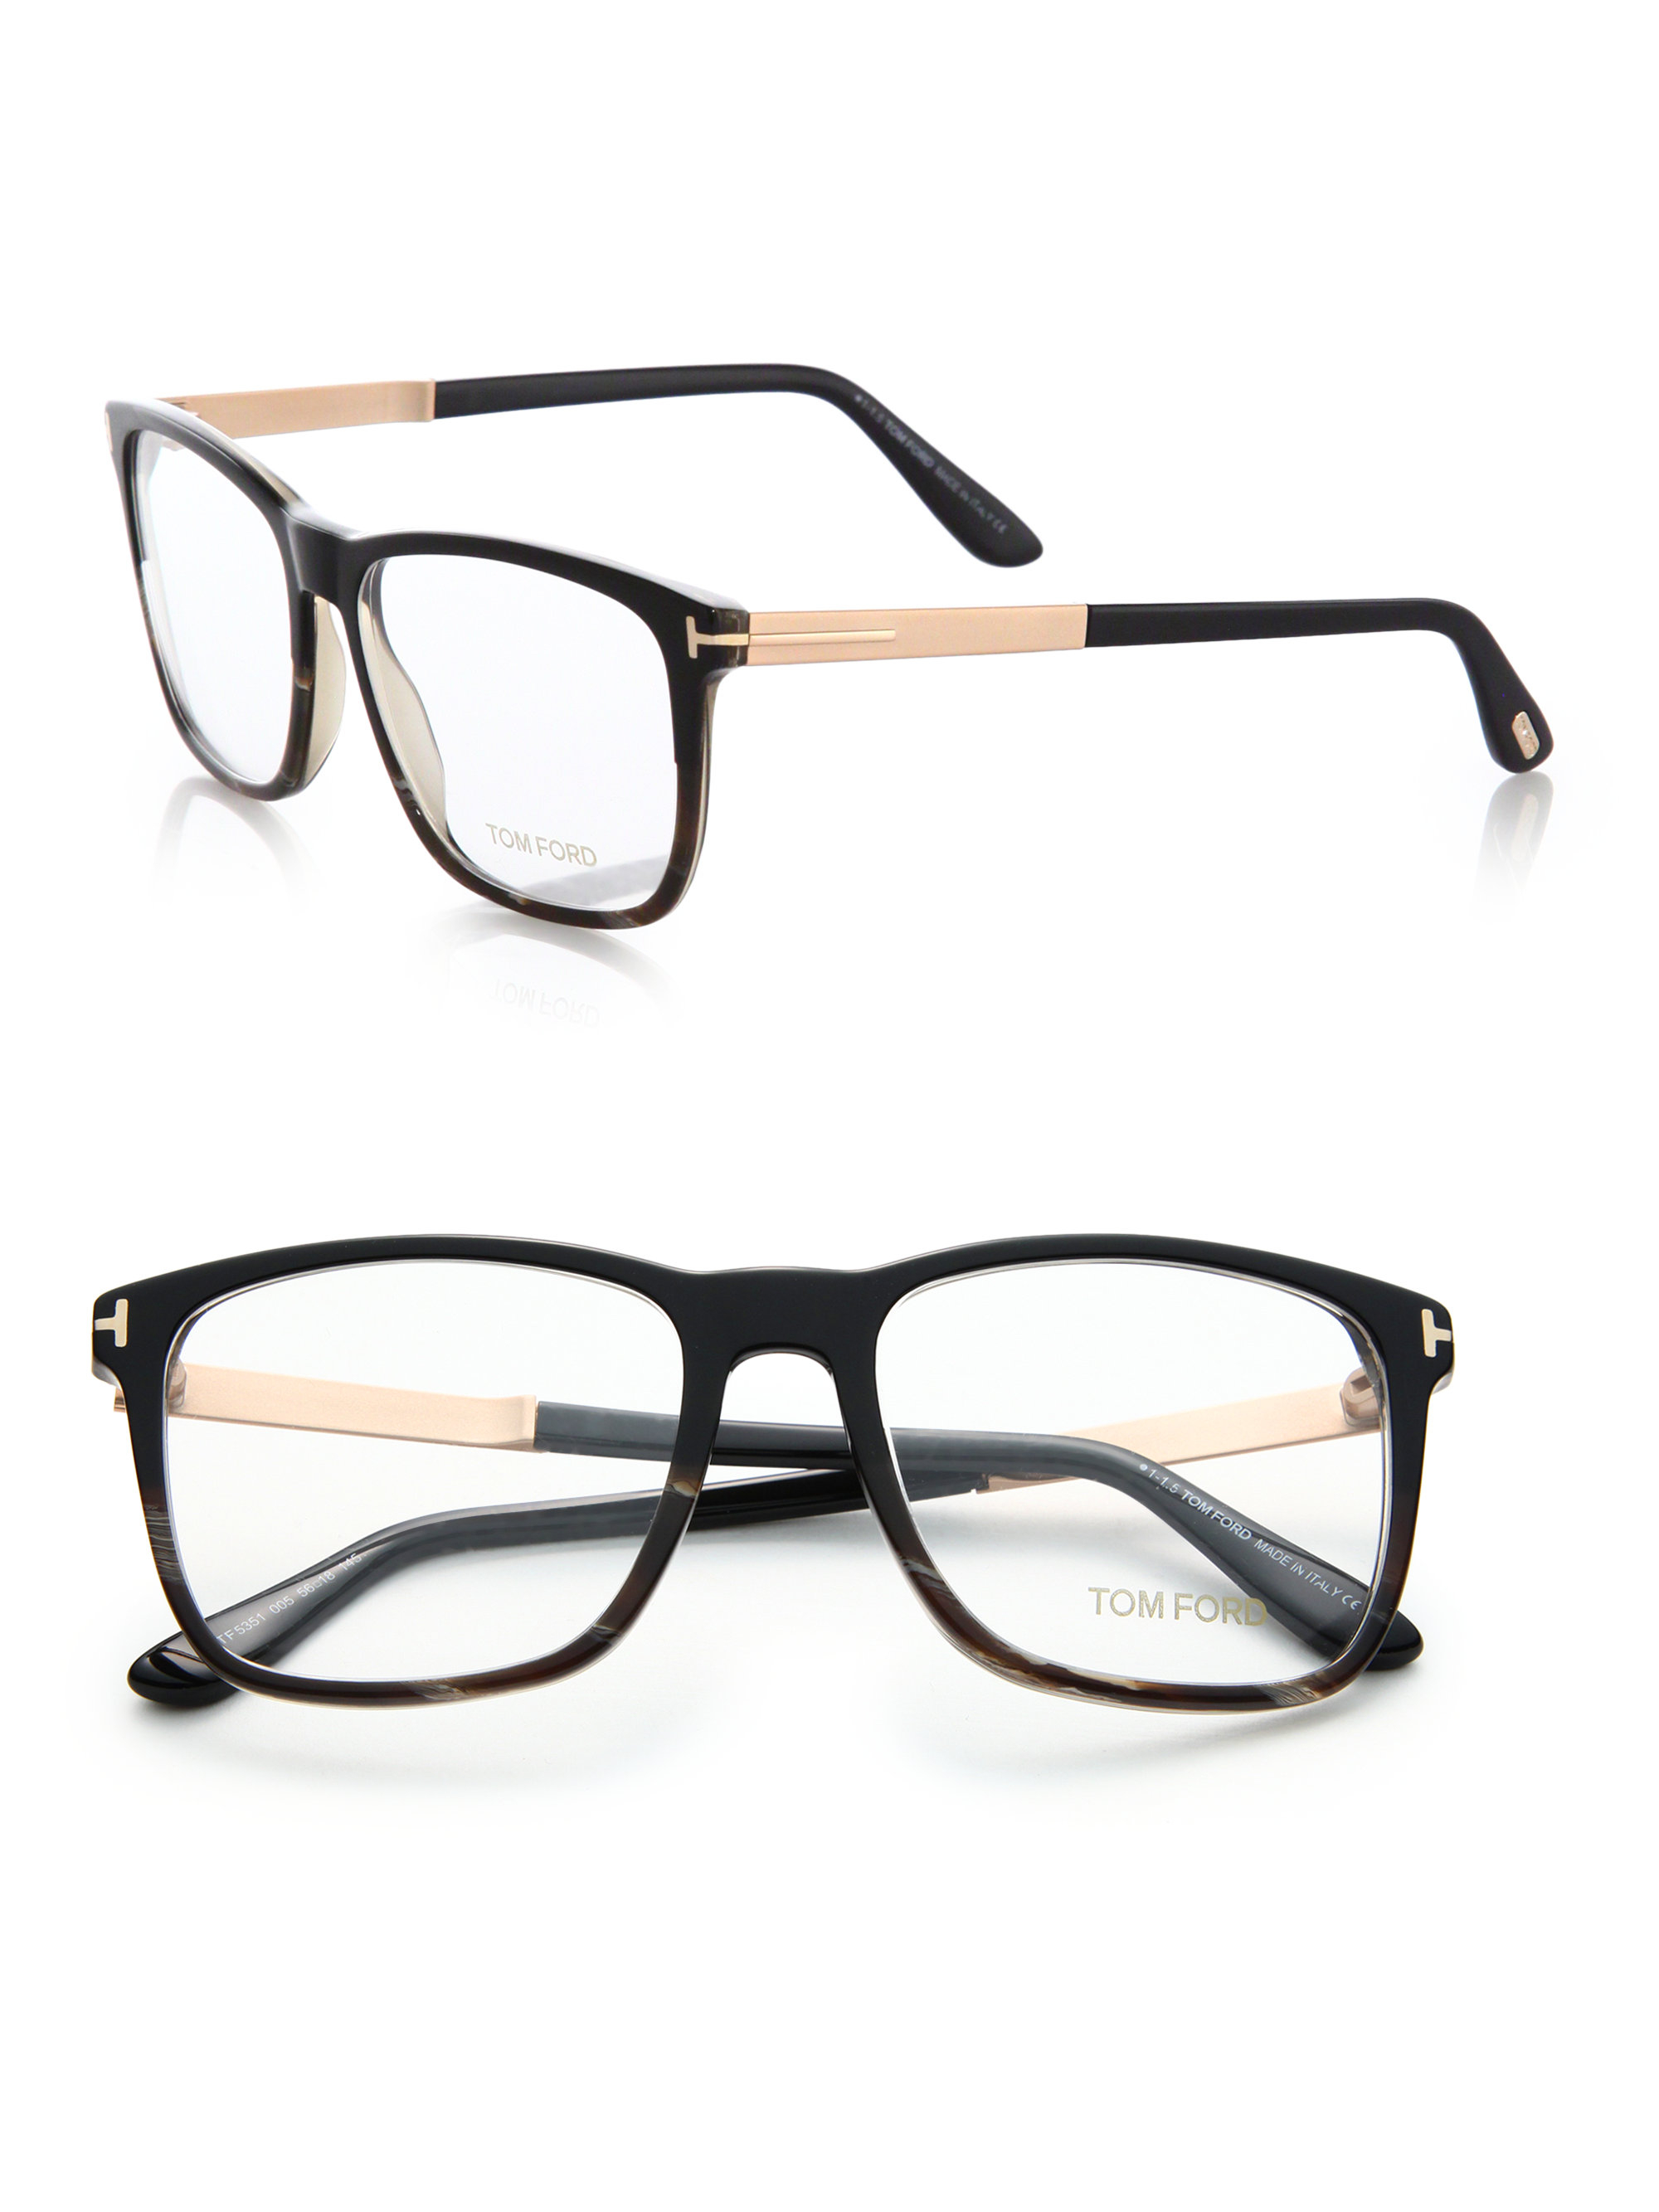 73124455d20 Tom Ford Glasses Frames Sale - Best Glasses Cnapracticetesting.Com 2018